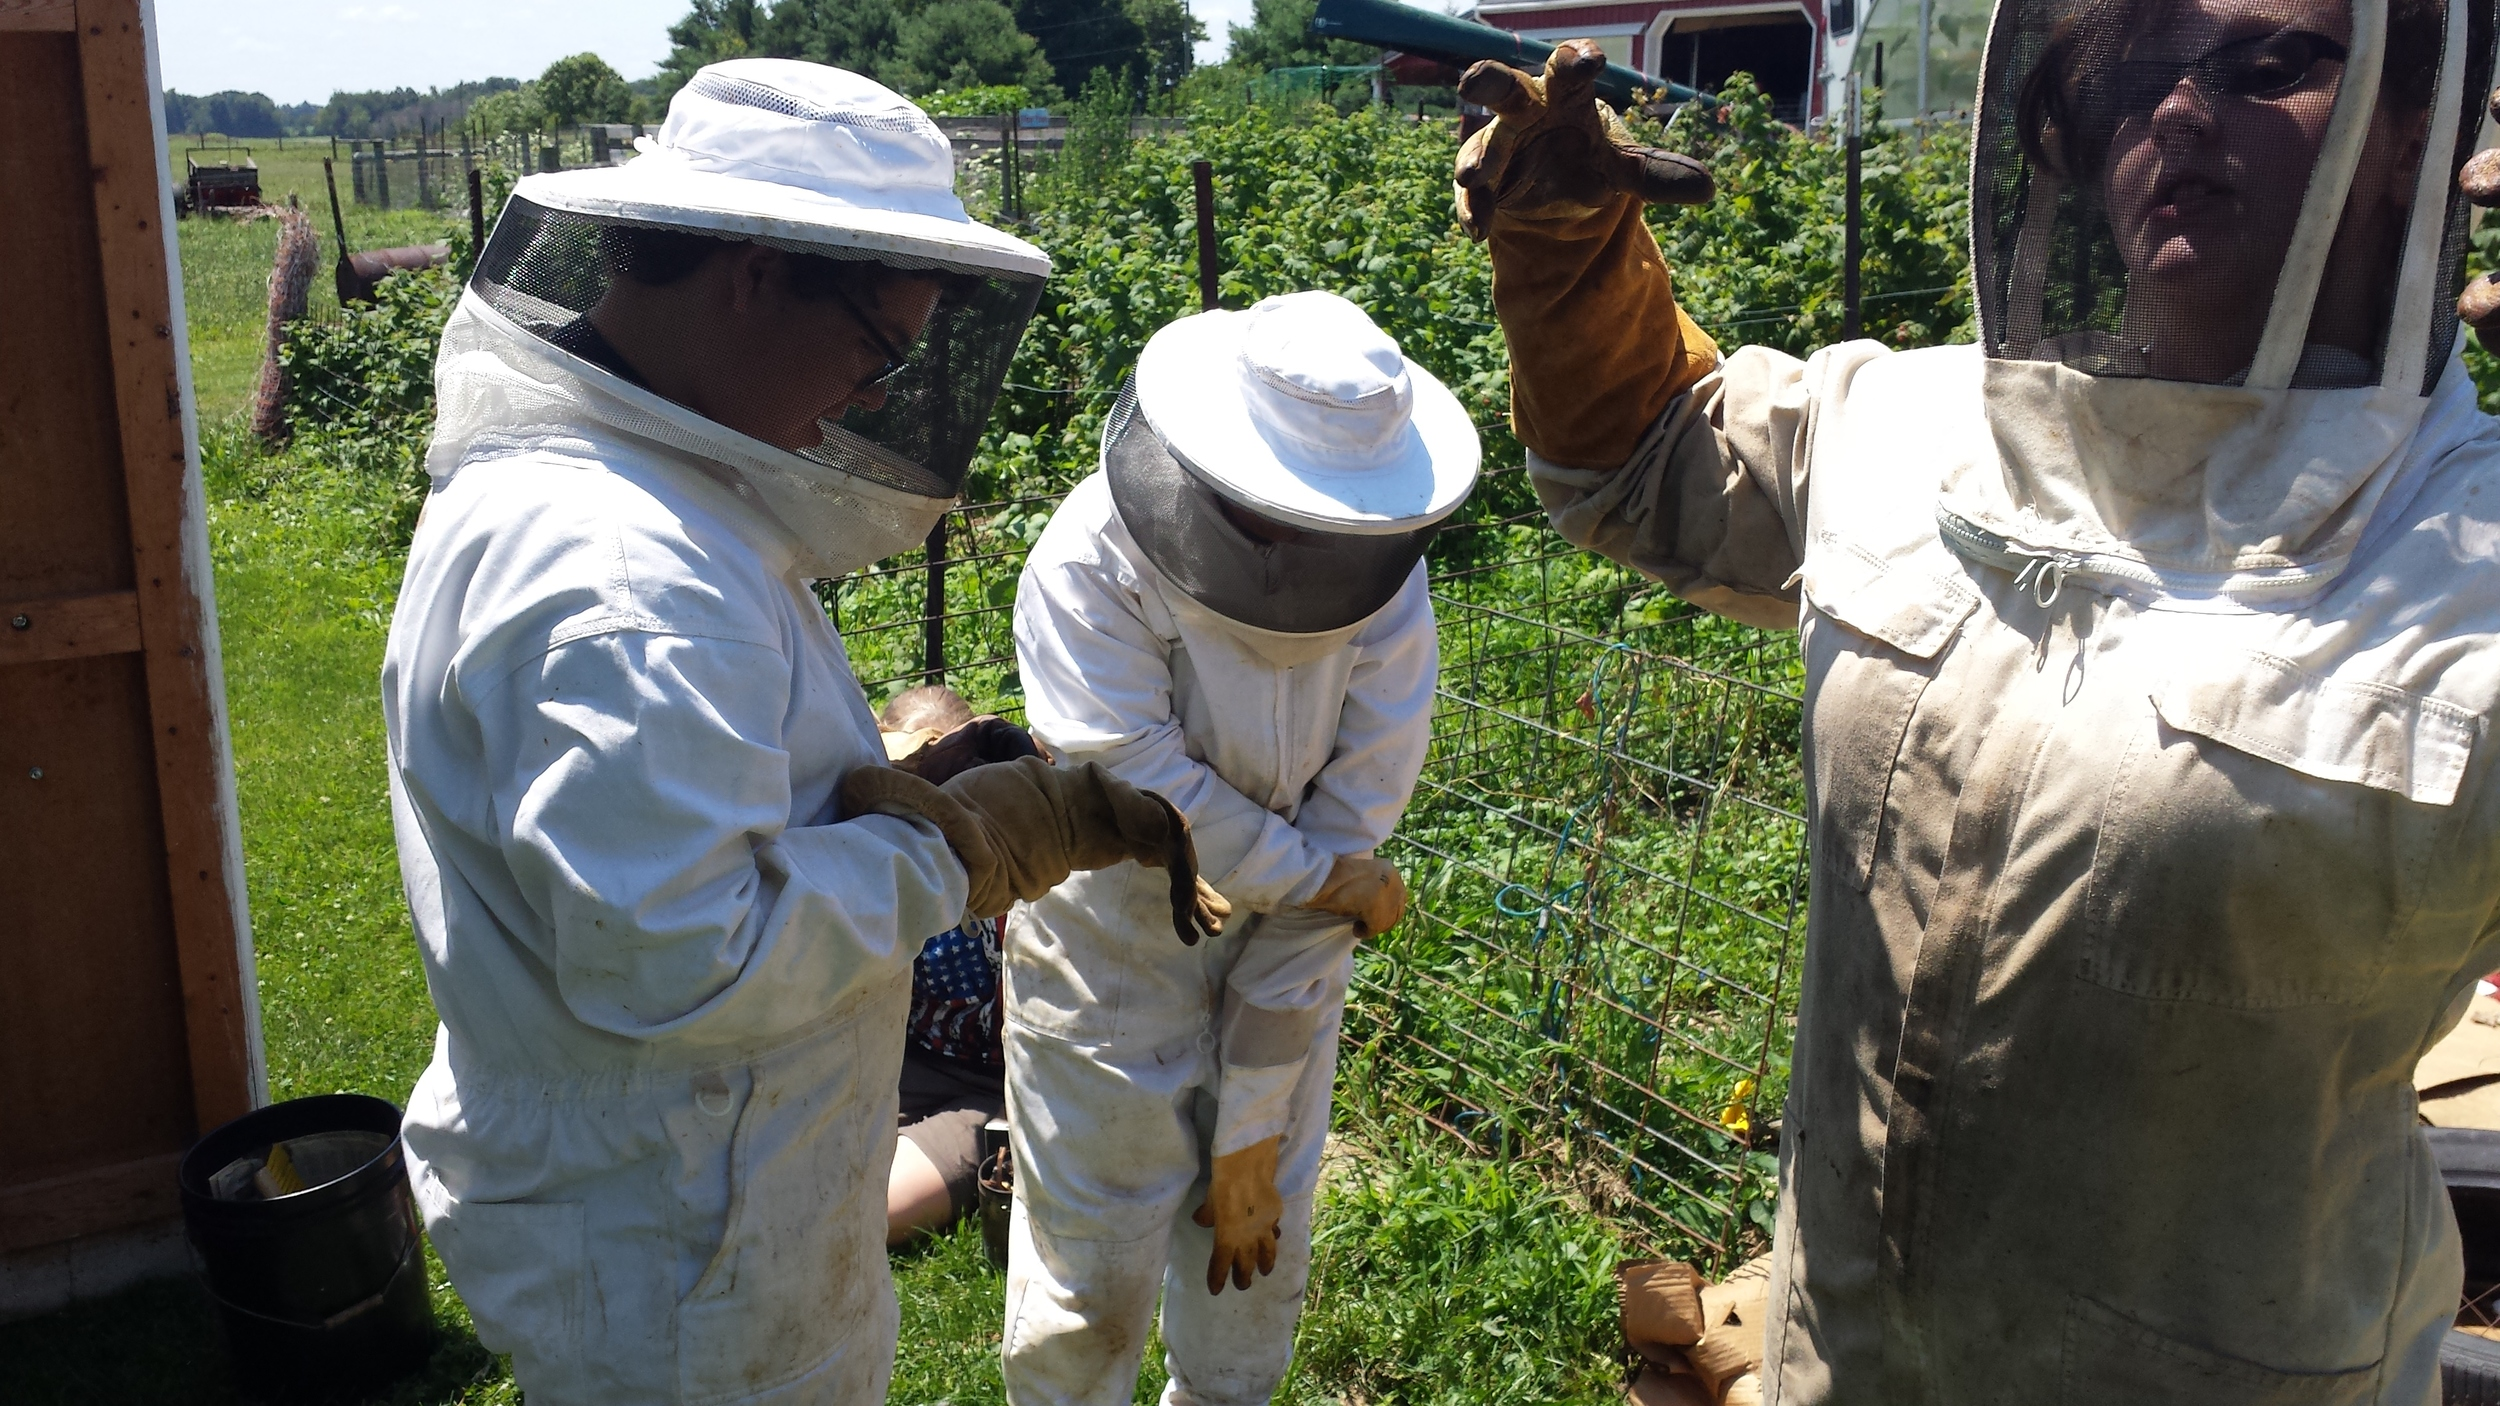 Climate Campers suit up to check out the bees.